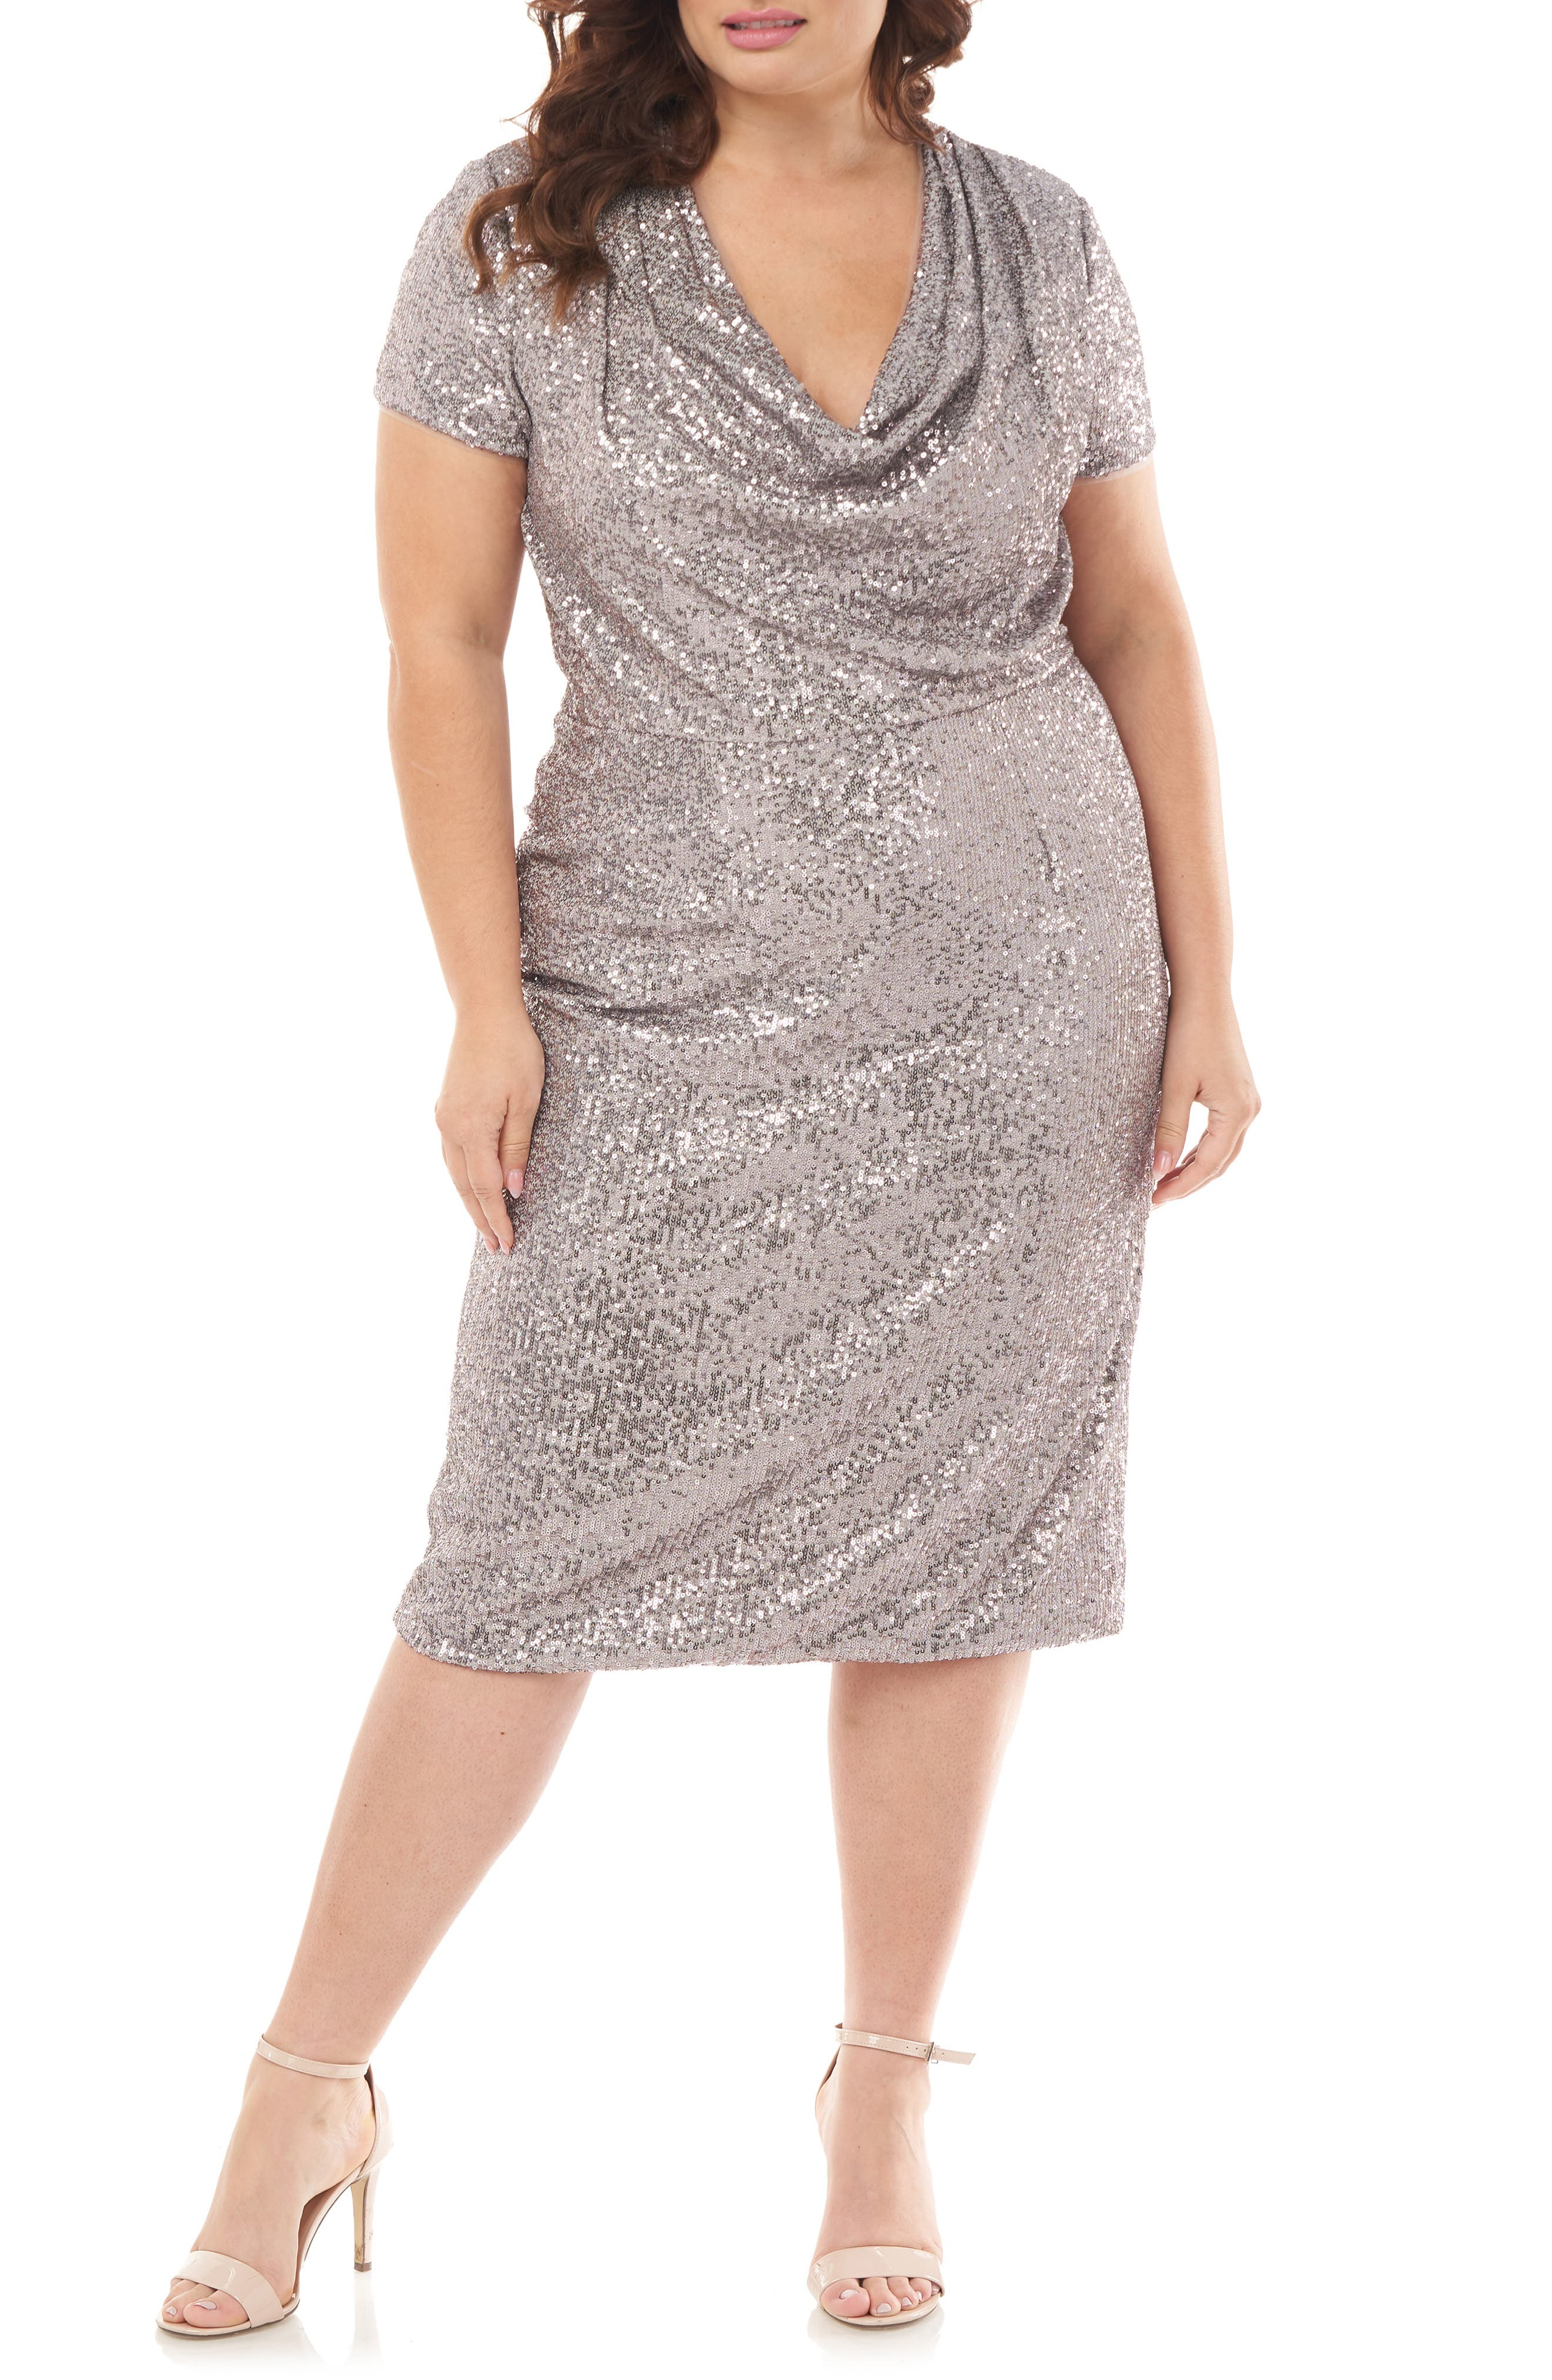 70s Dresses – Disco Dress, Hippie Dress, Wrap Dress Plus Size Womens Js Collections Cowl Neck Sequin Cocktail Dress $288.00 AT vintagedancer.com